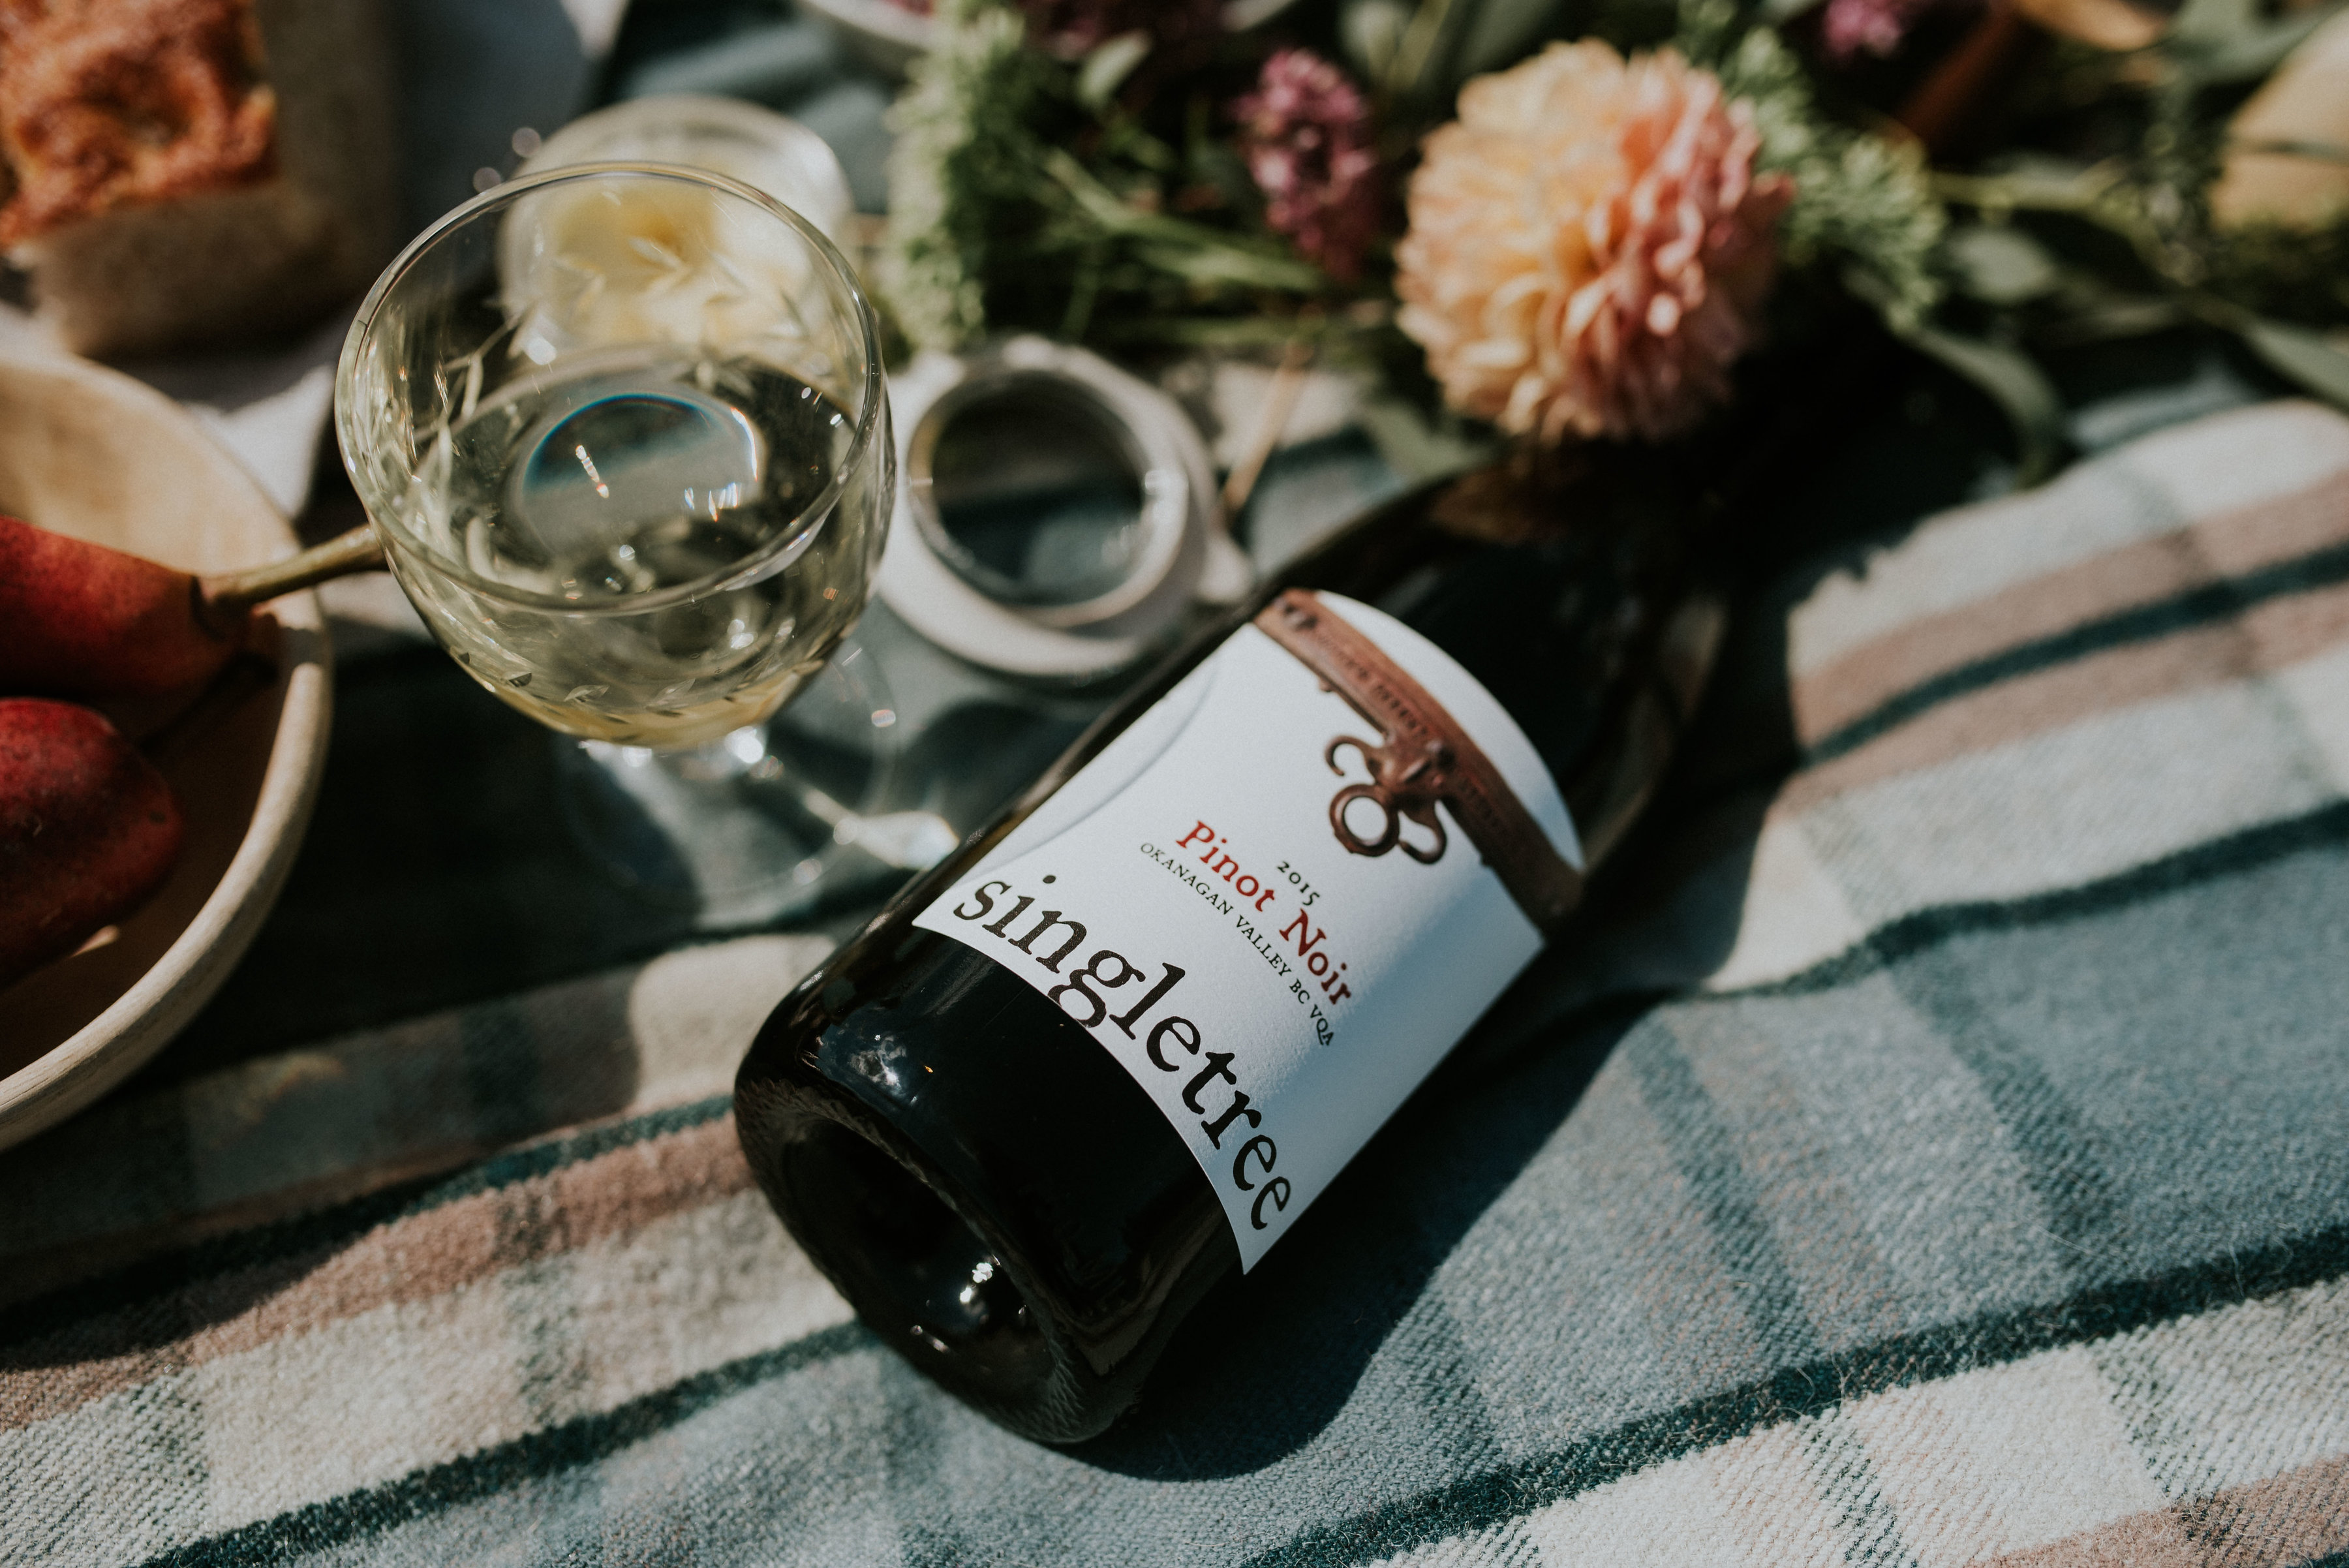 Spring Release April 13 at Singletree Winery